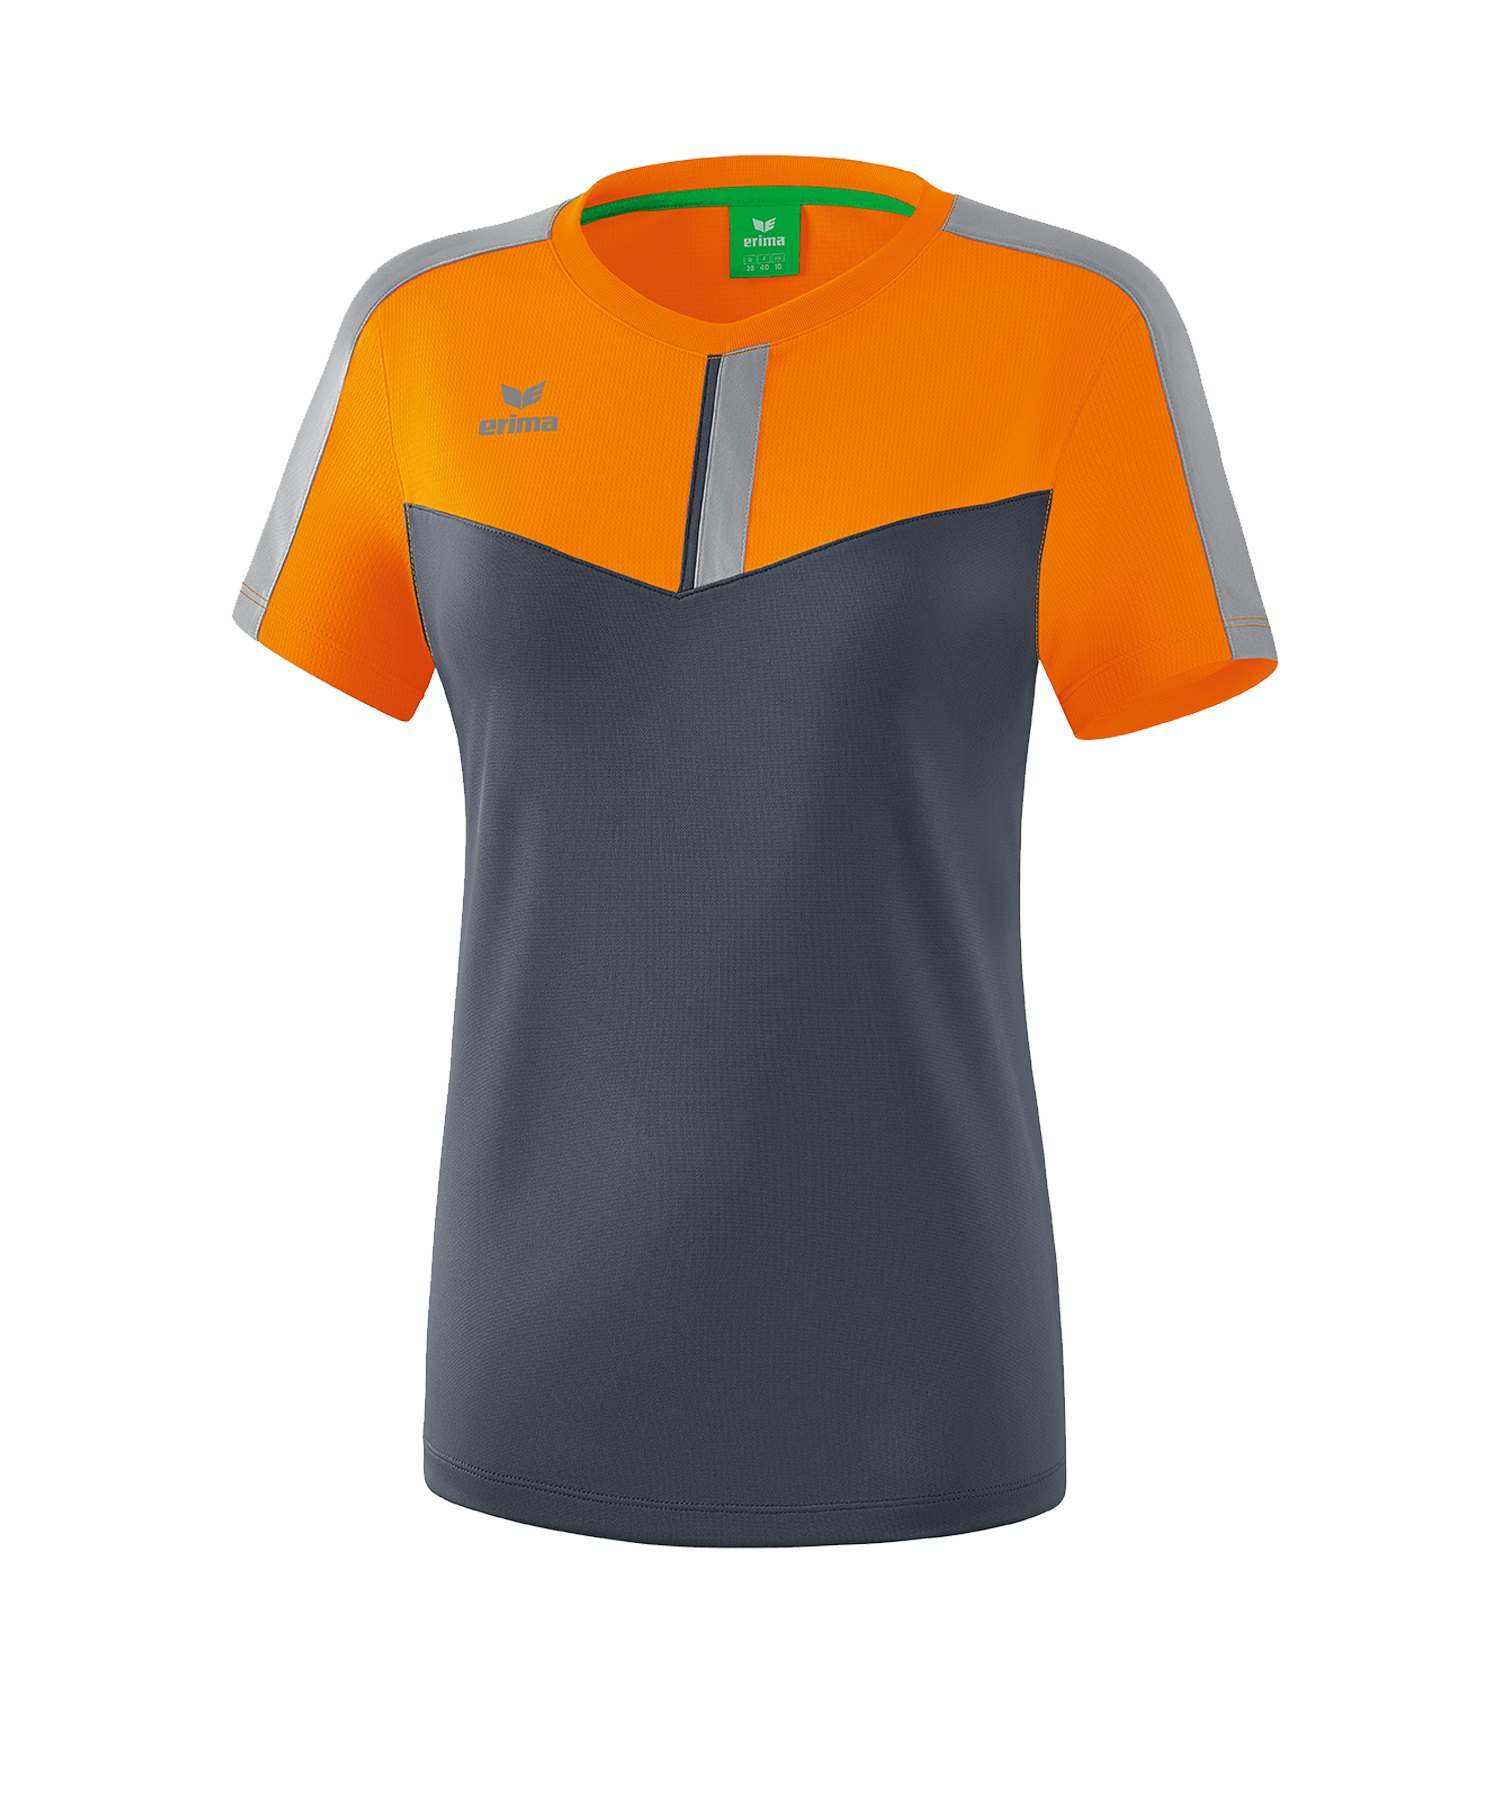 Erima Squad T-Shirt Damen Orange Grau - orange